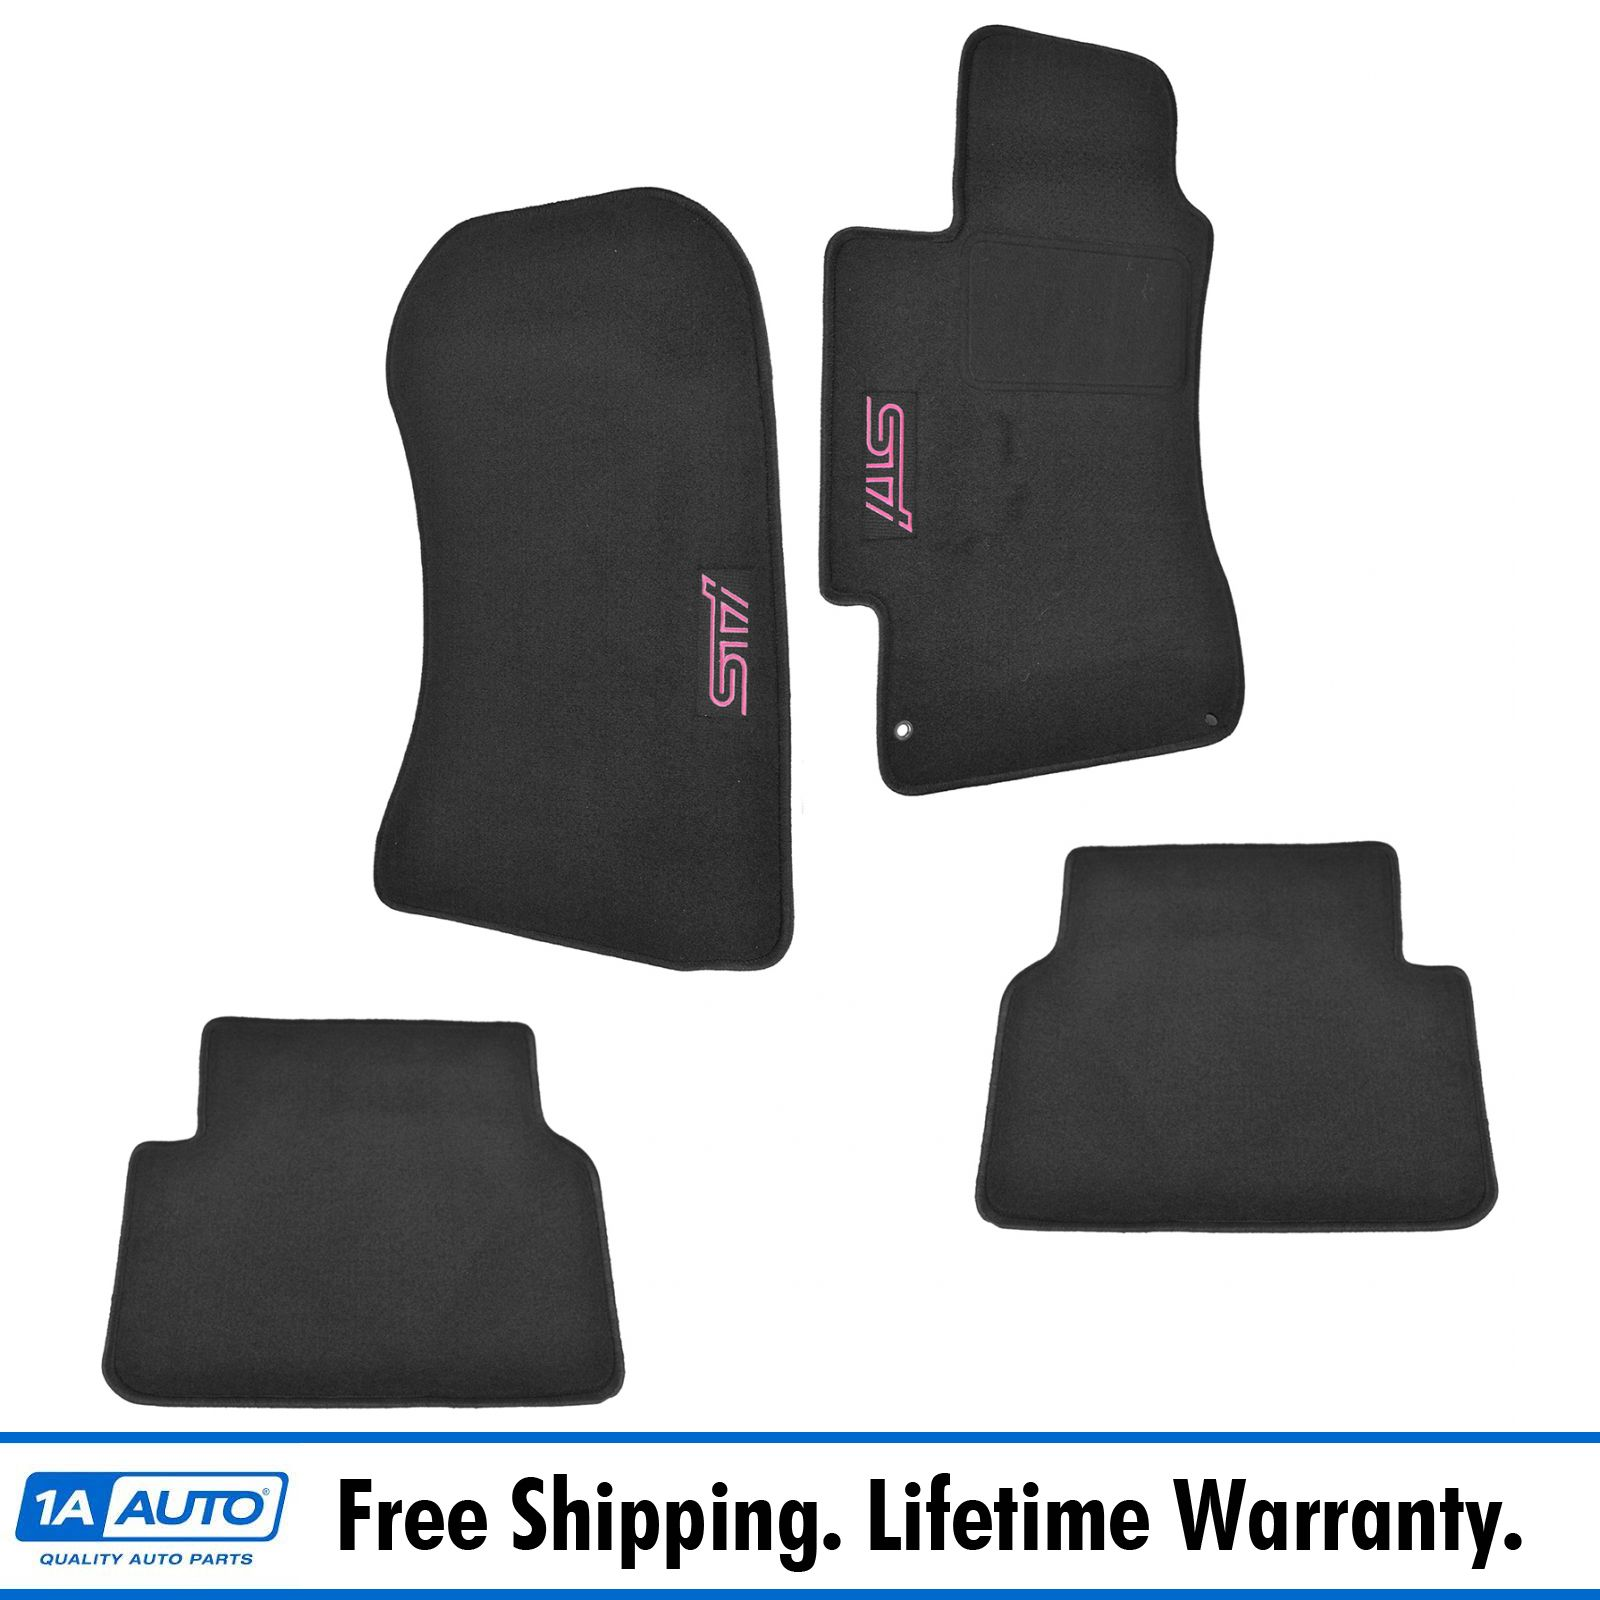 Oem Sci440b202 Floor Mat Black Carpeted Set For Subaru Impreza Wrx Sti Ebay